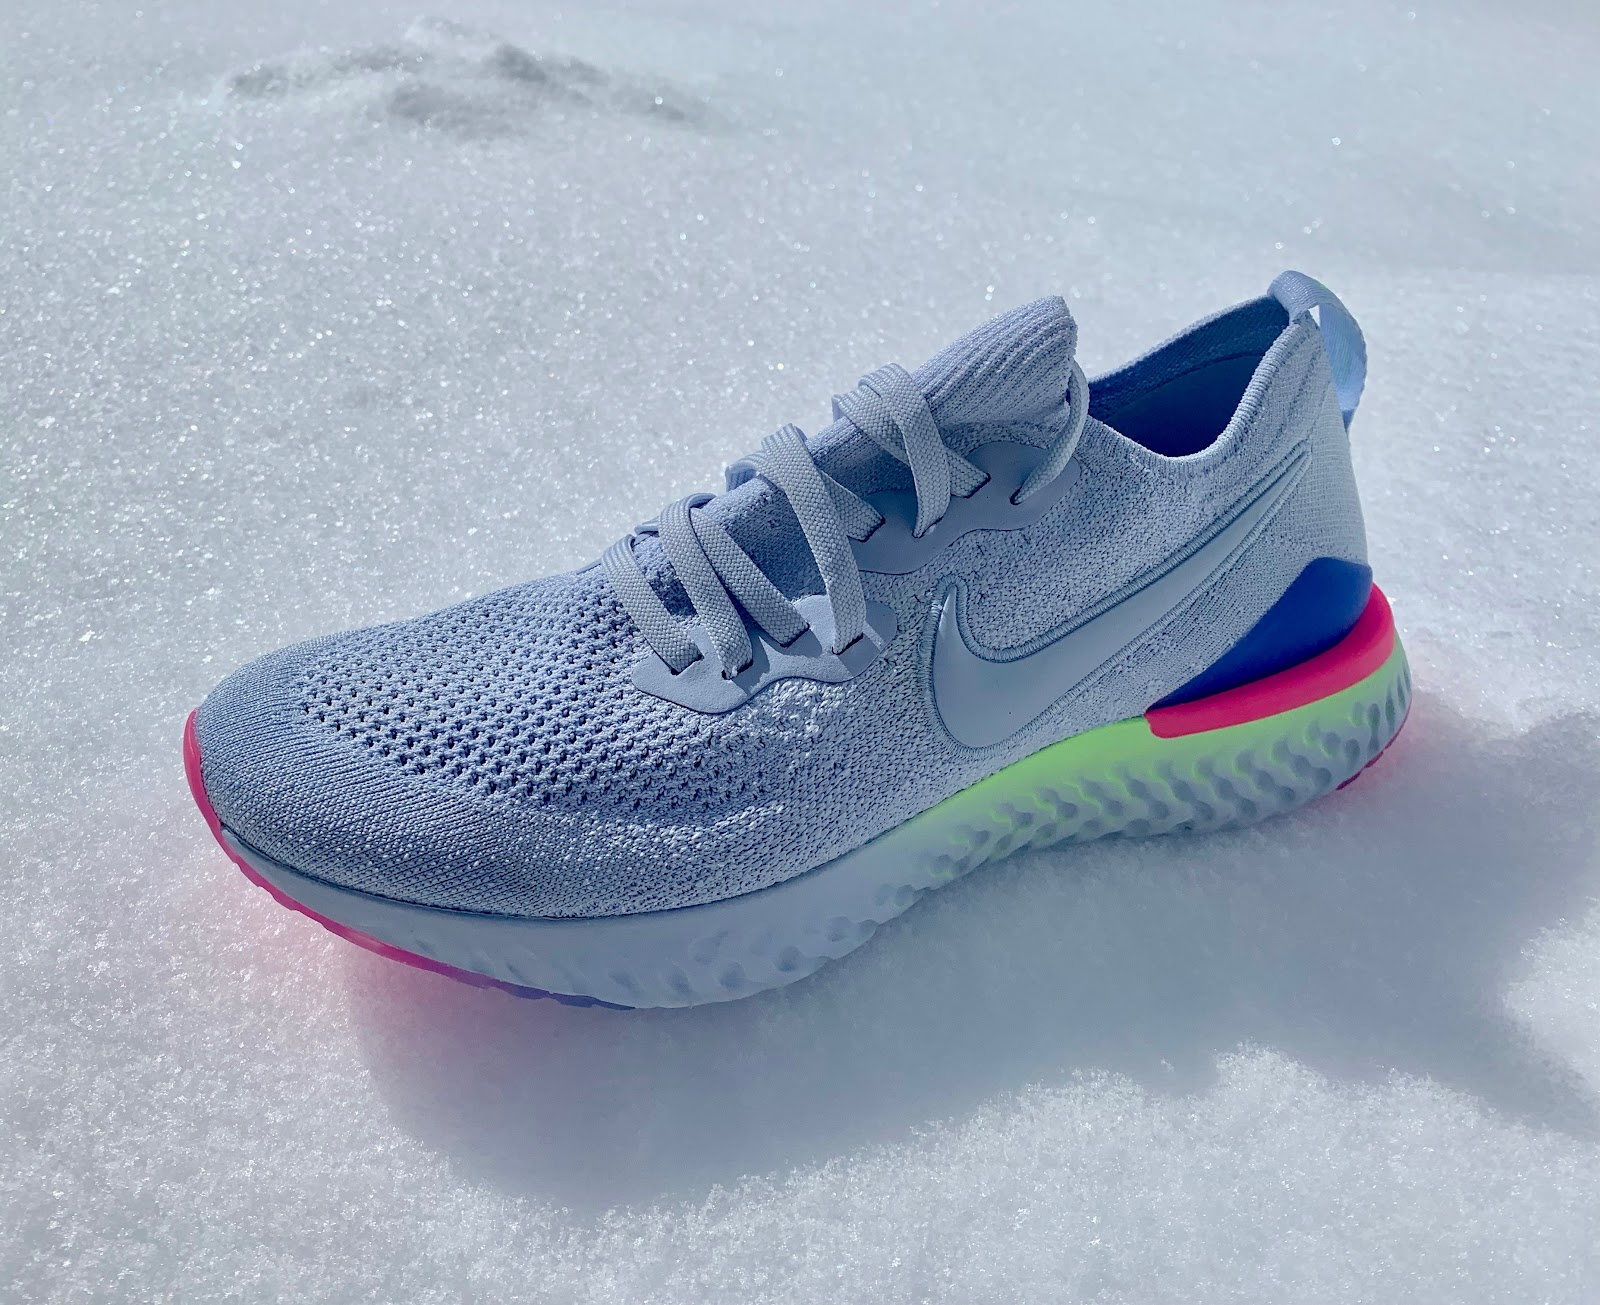 wholesale dealer ef668 0e152 Road Trail Run: Nike Epic React Flyknit 2 Review: A Subtle ...